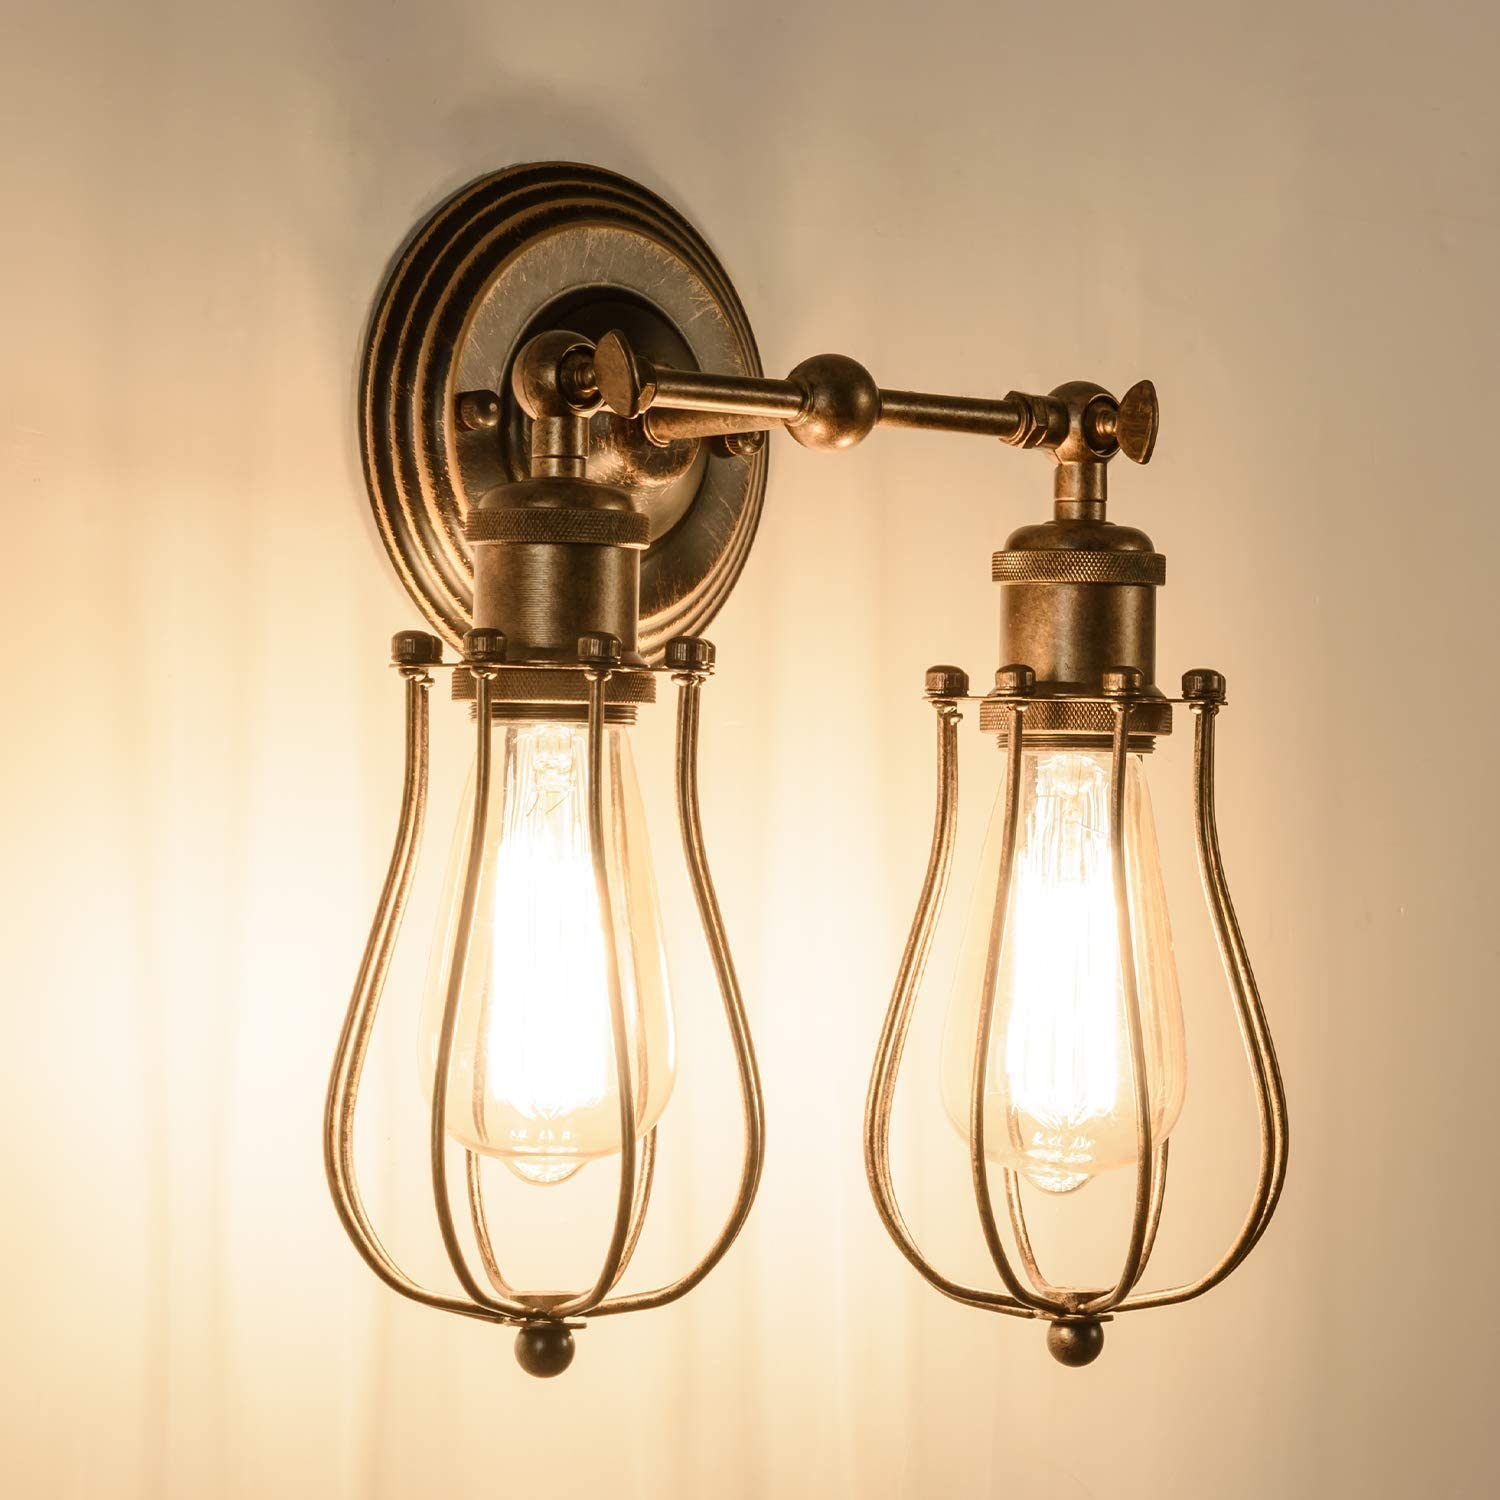 Bronze Bulb Not Included Indoor Industrial Lights Fixture Adjustable Antique Vintage One Edison Bulb Wall Lamp GLADFRESIT Wire Cage Wall Sconce Rustic Lighting